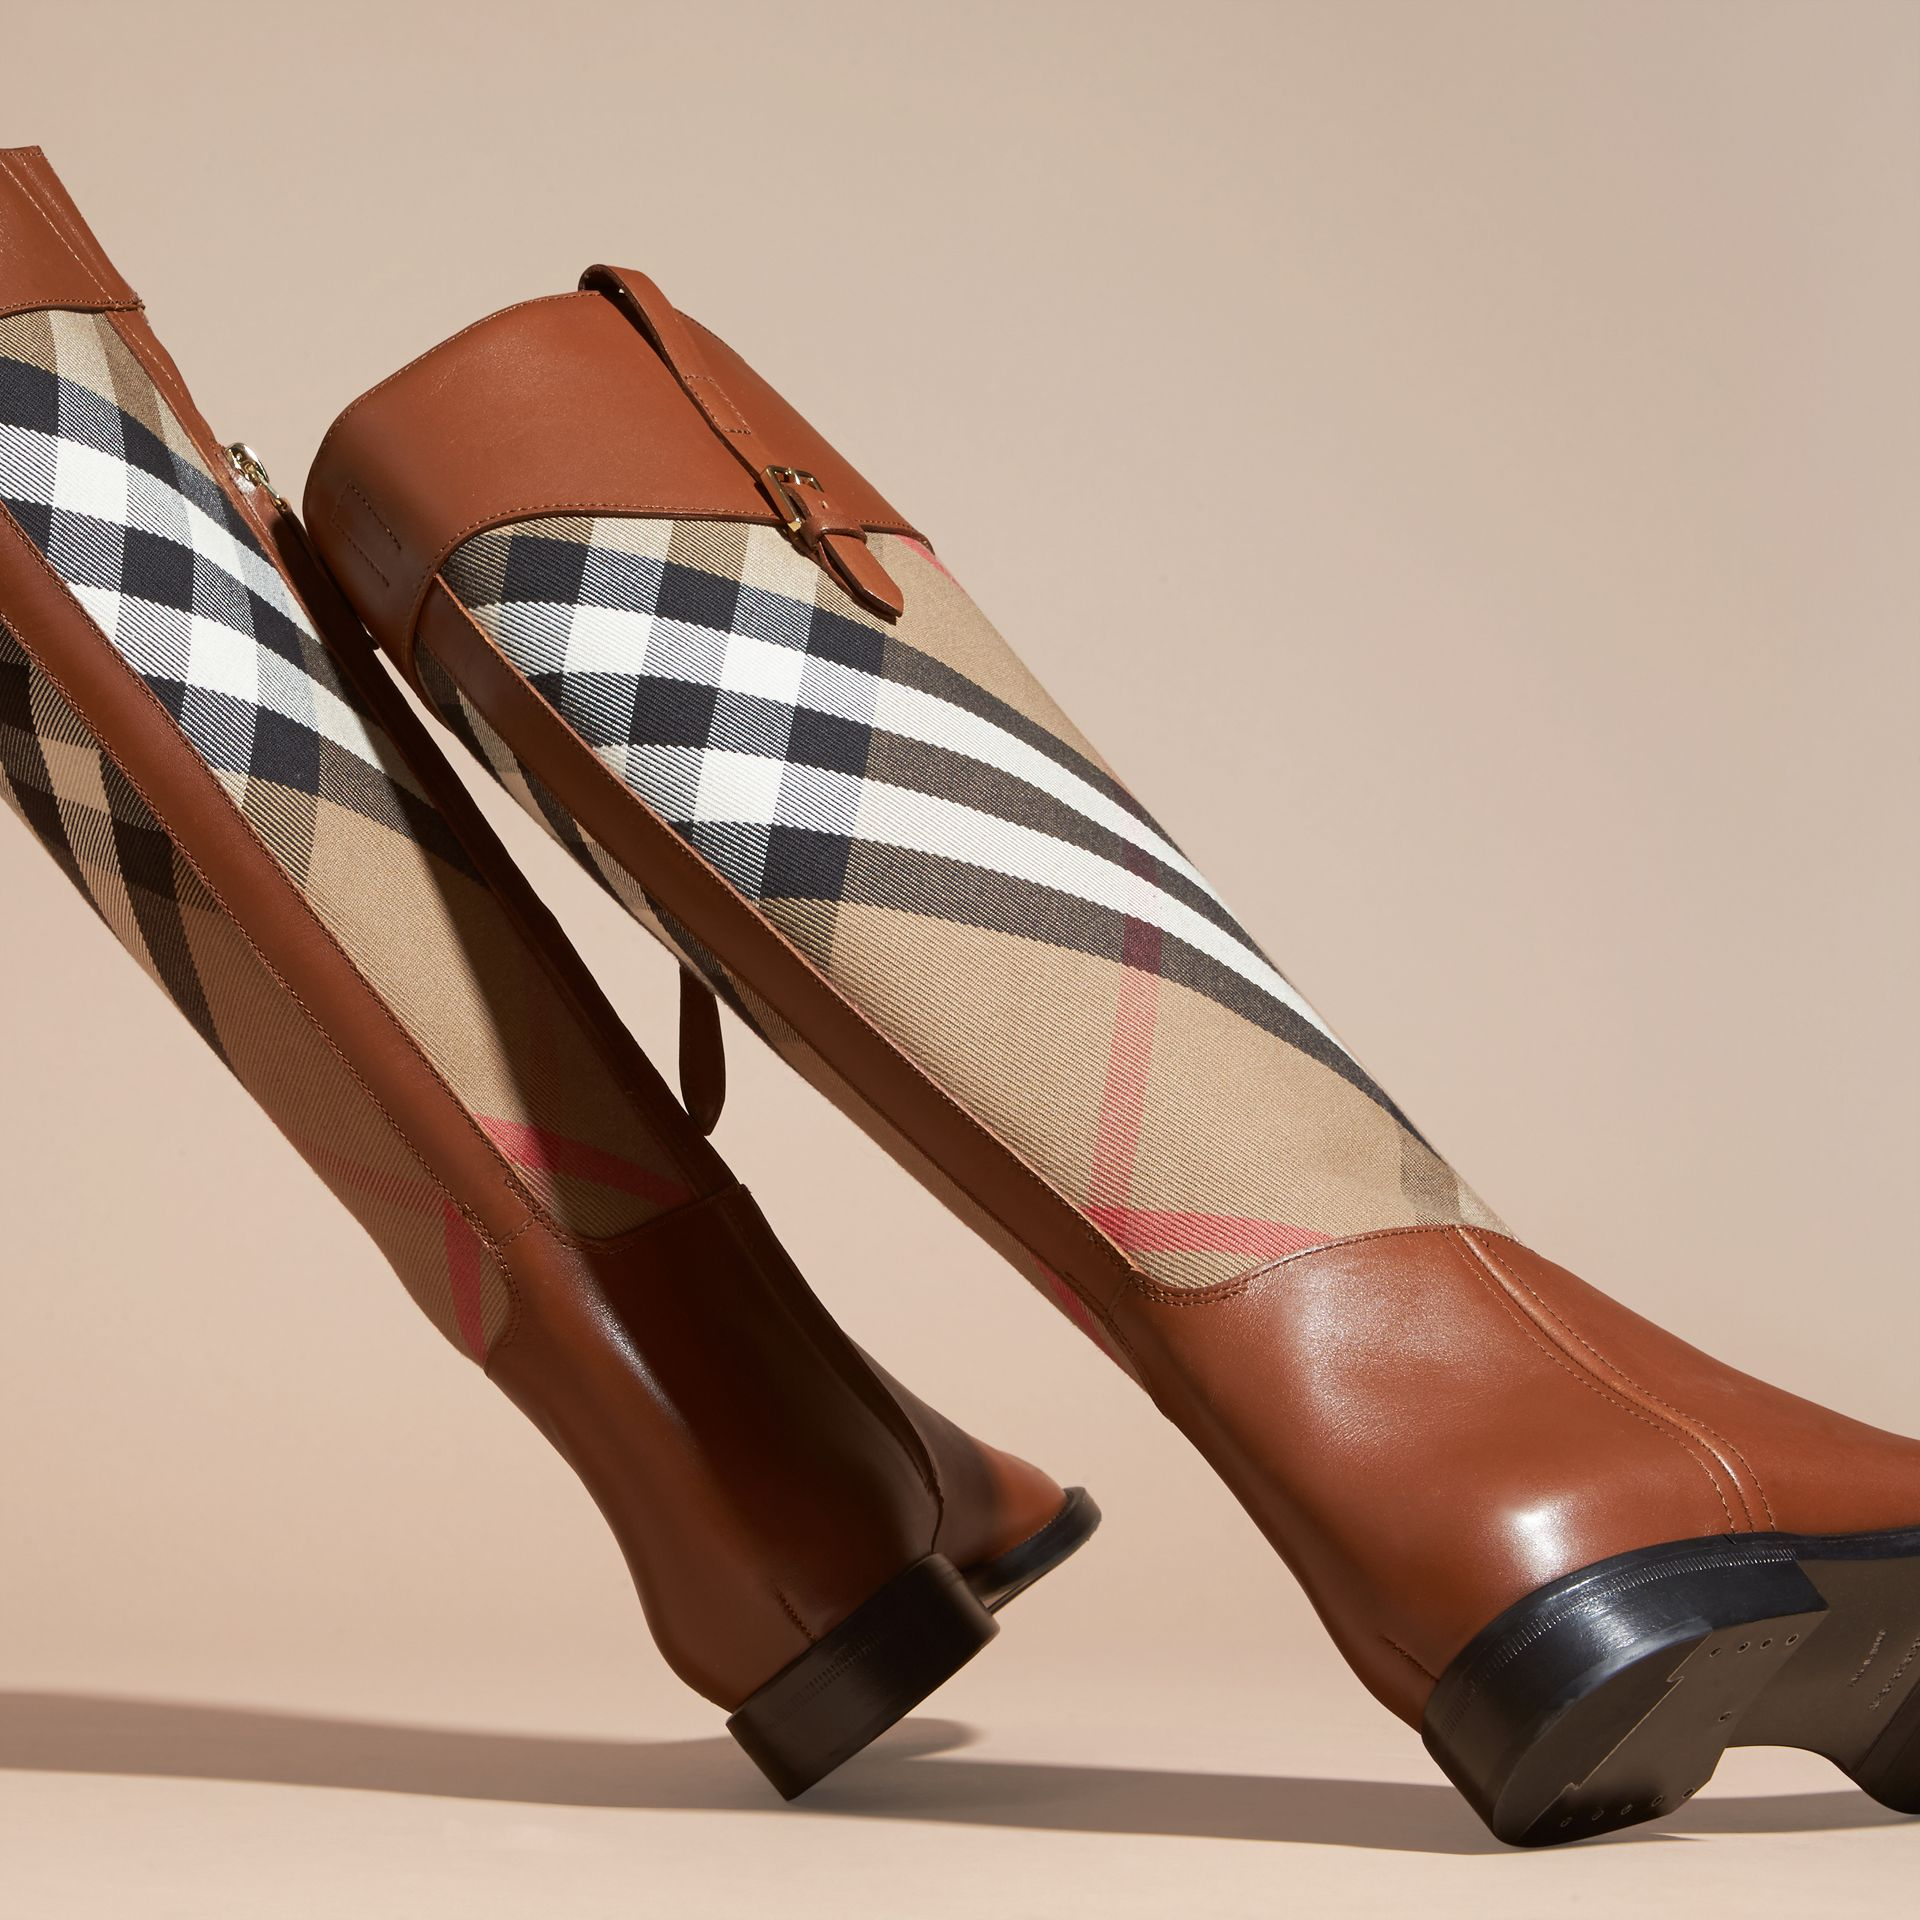 House Check and Leather Riding Boots in Chestnut - Women | Burberry - gallery image 4